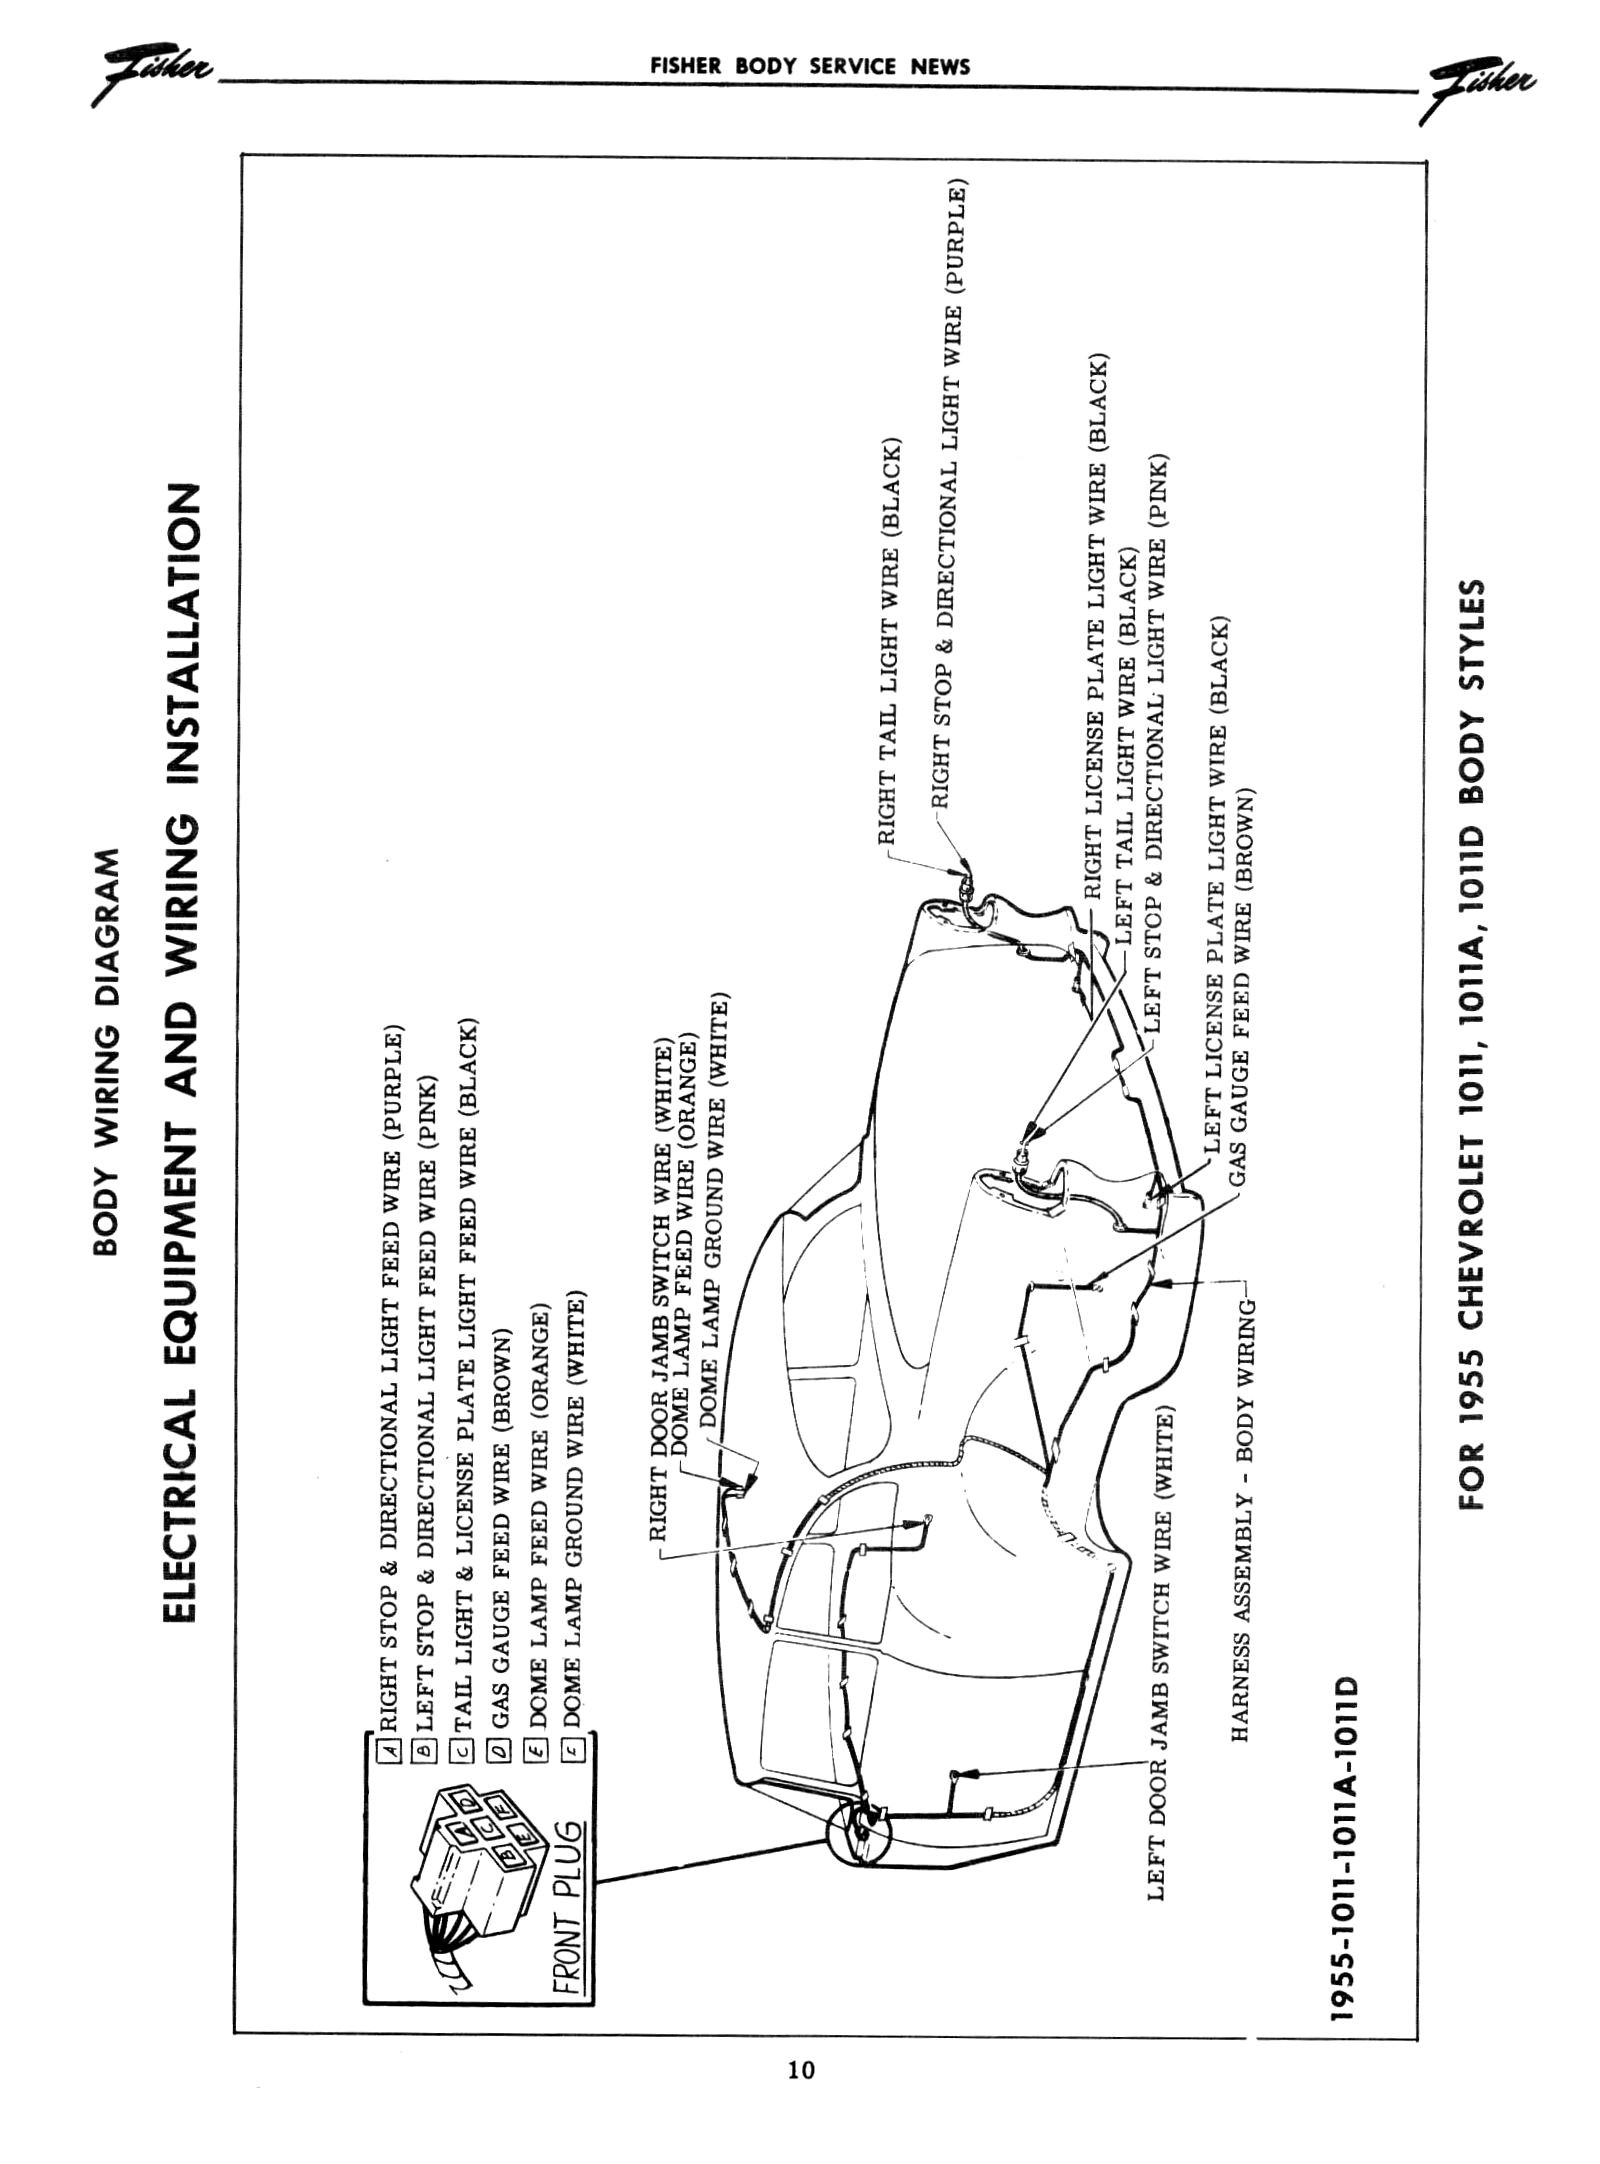 1950 Chevy Truck Light Switch Wiring Diagram : 44 Wiring